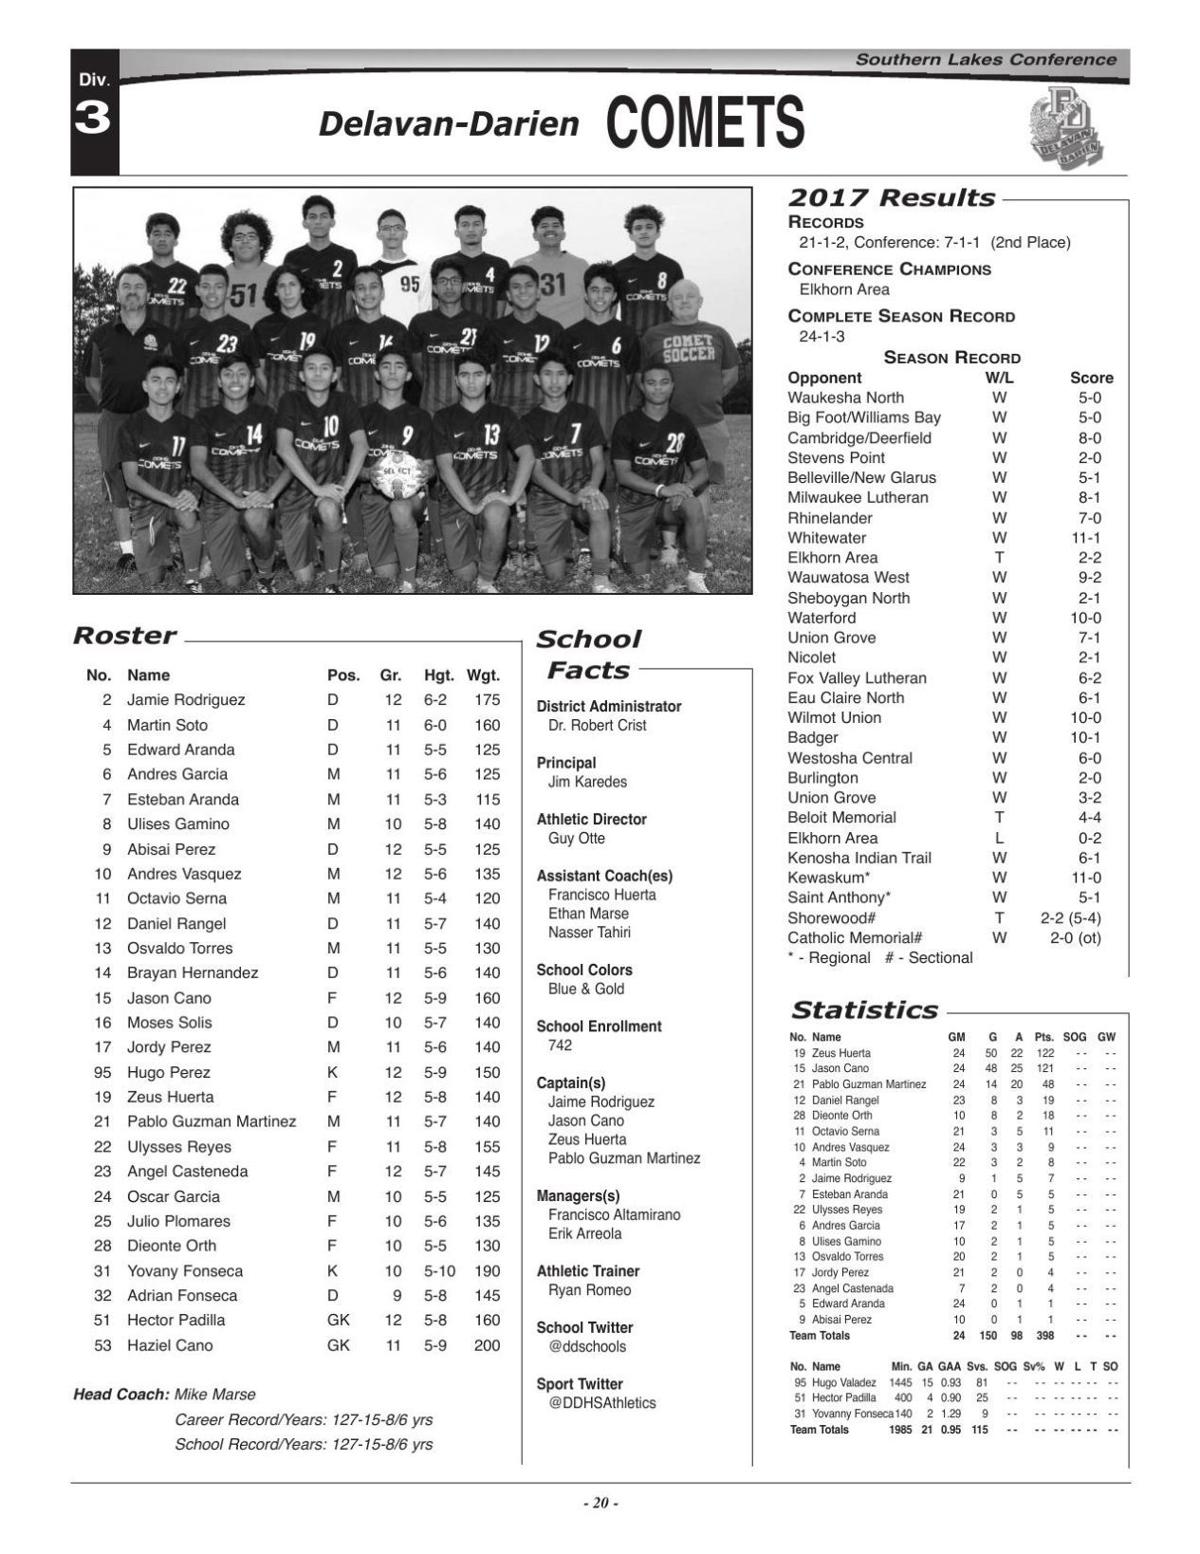 WIAA boys soccer: 2017 Division 3 rosters, statistics